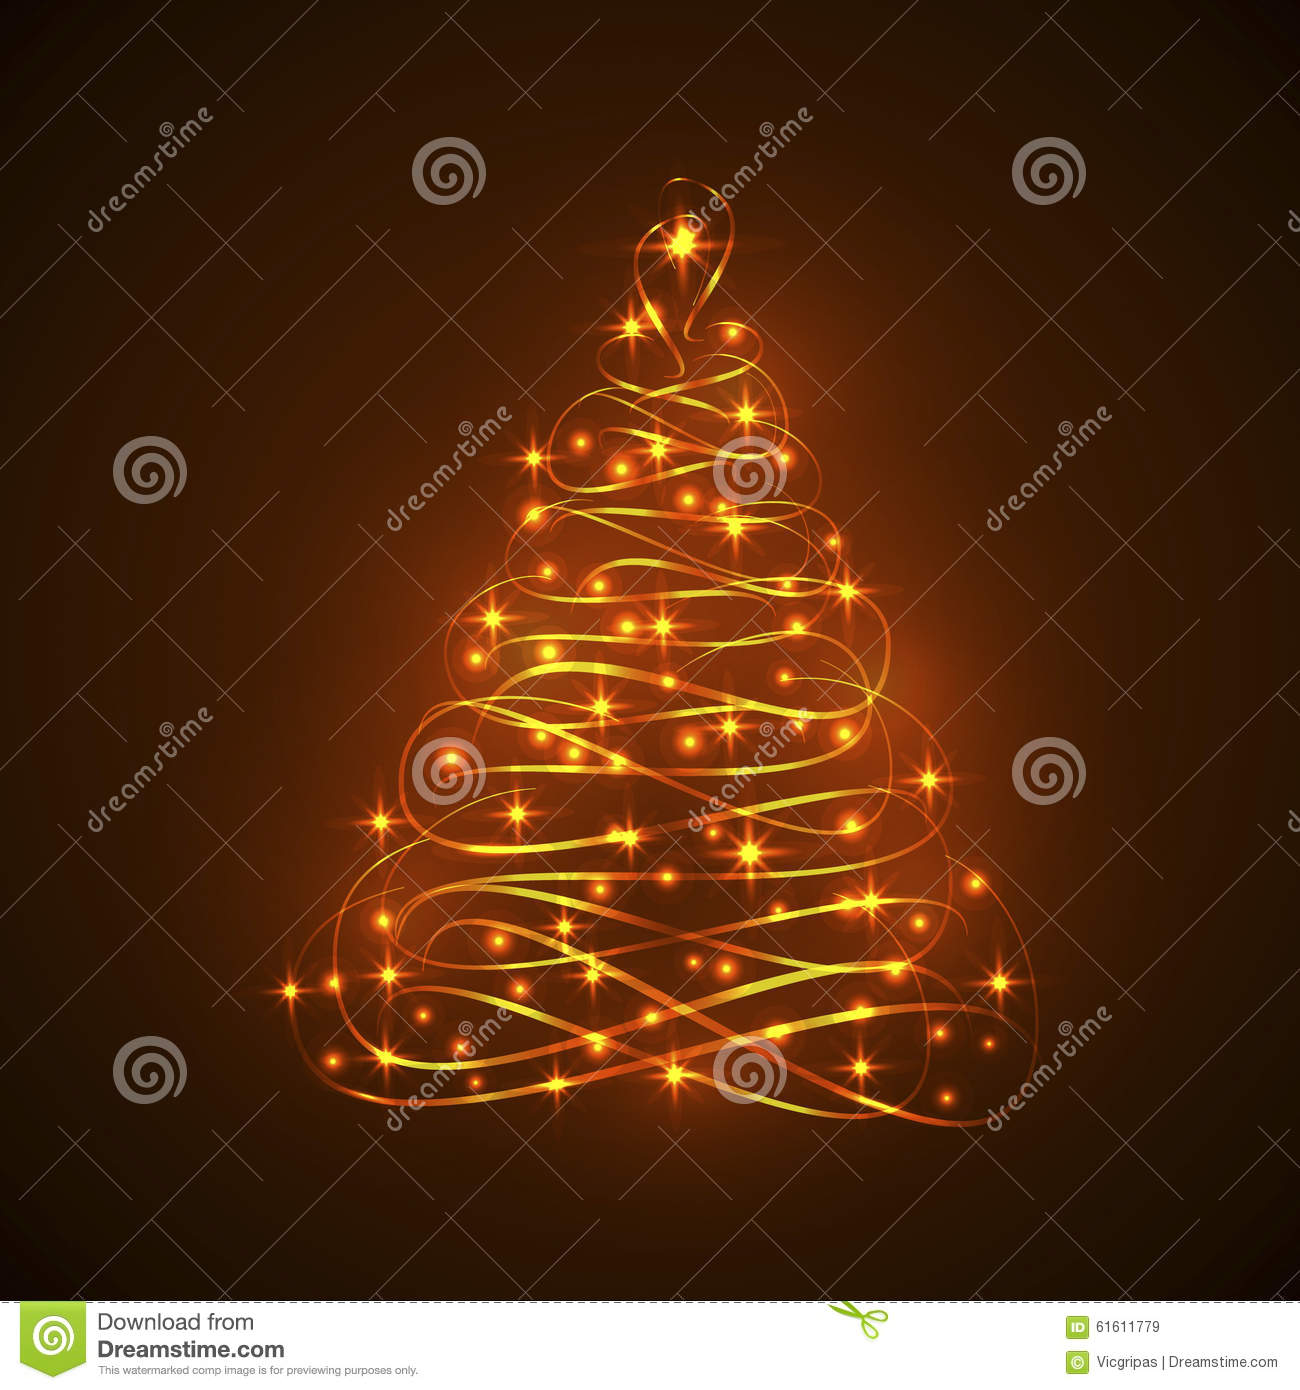 Abstract Shining Electric Light Christmas Tree Stock